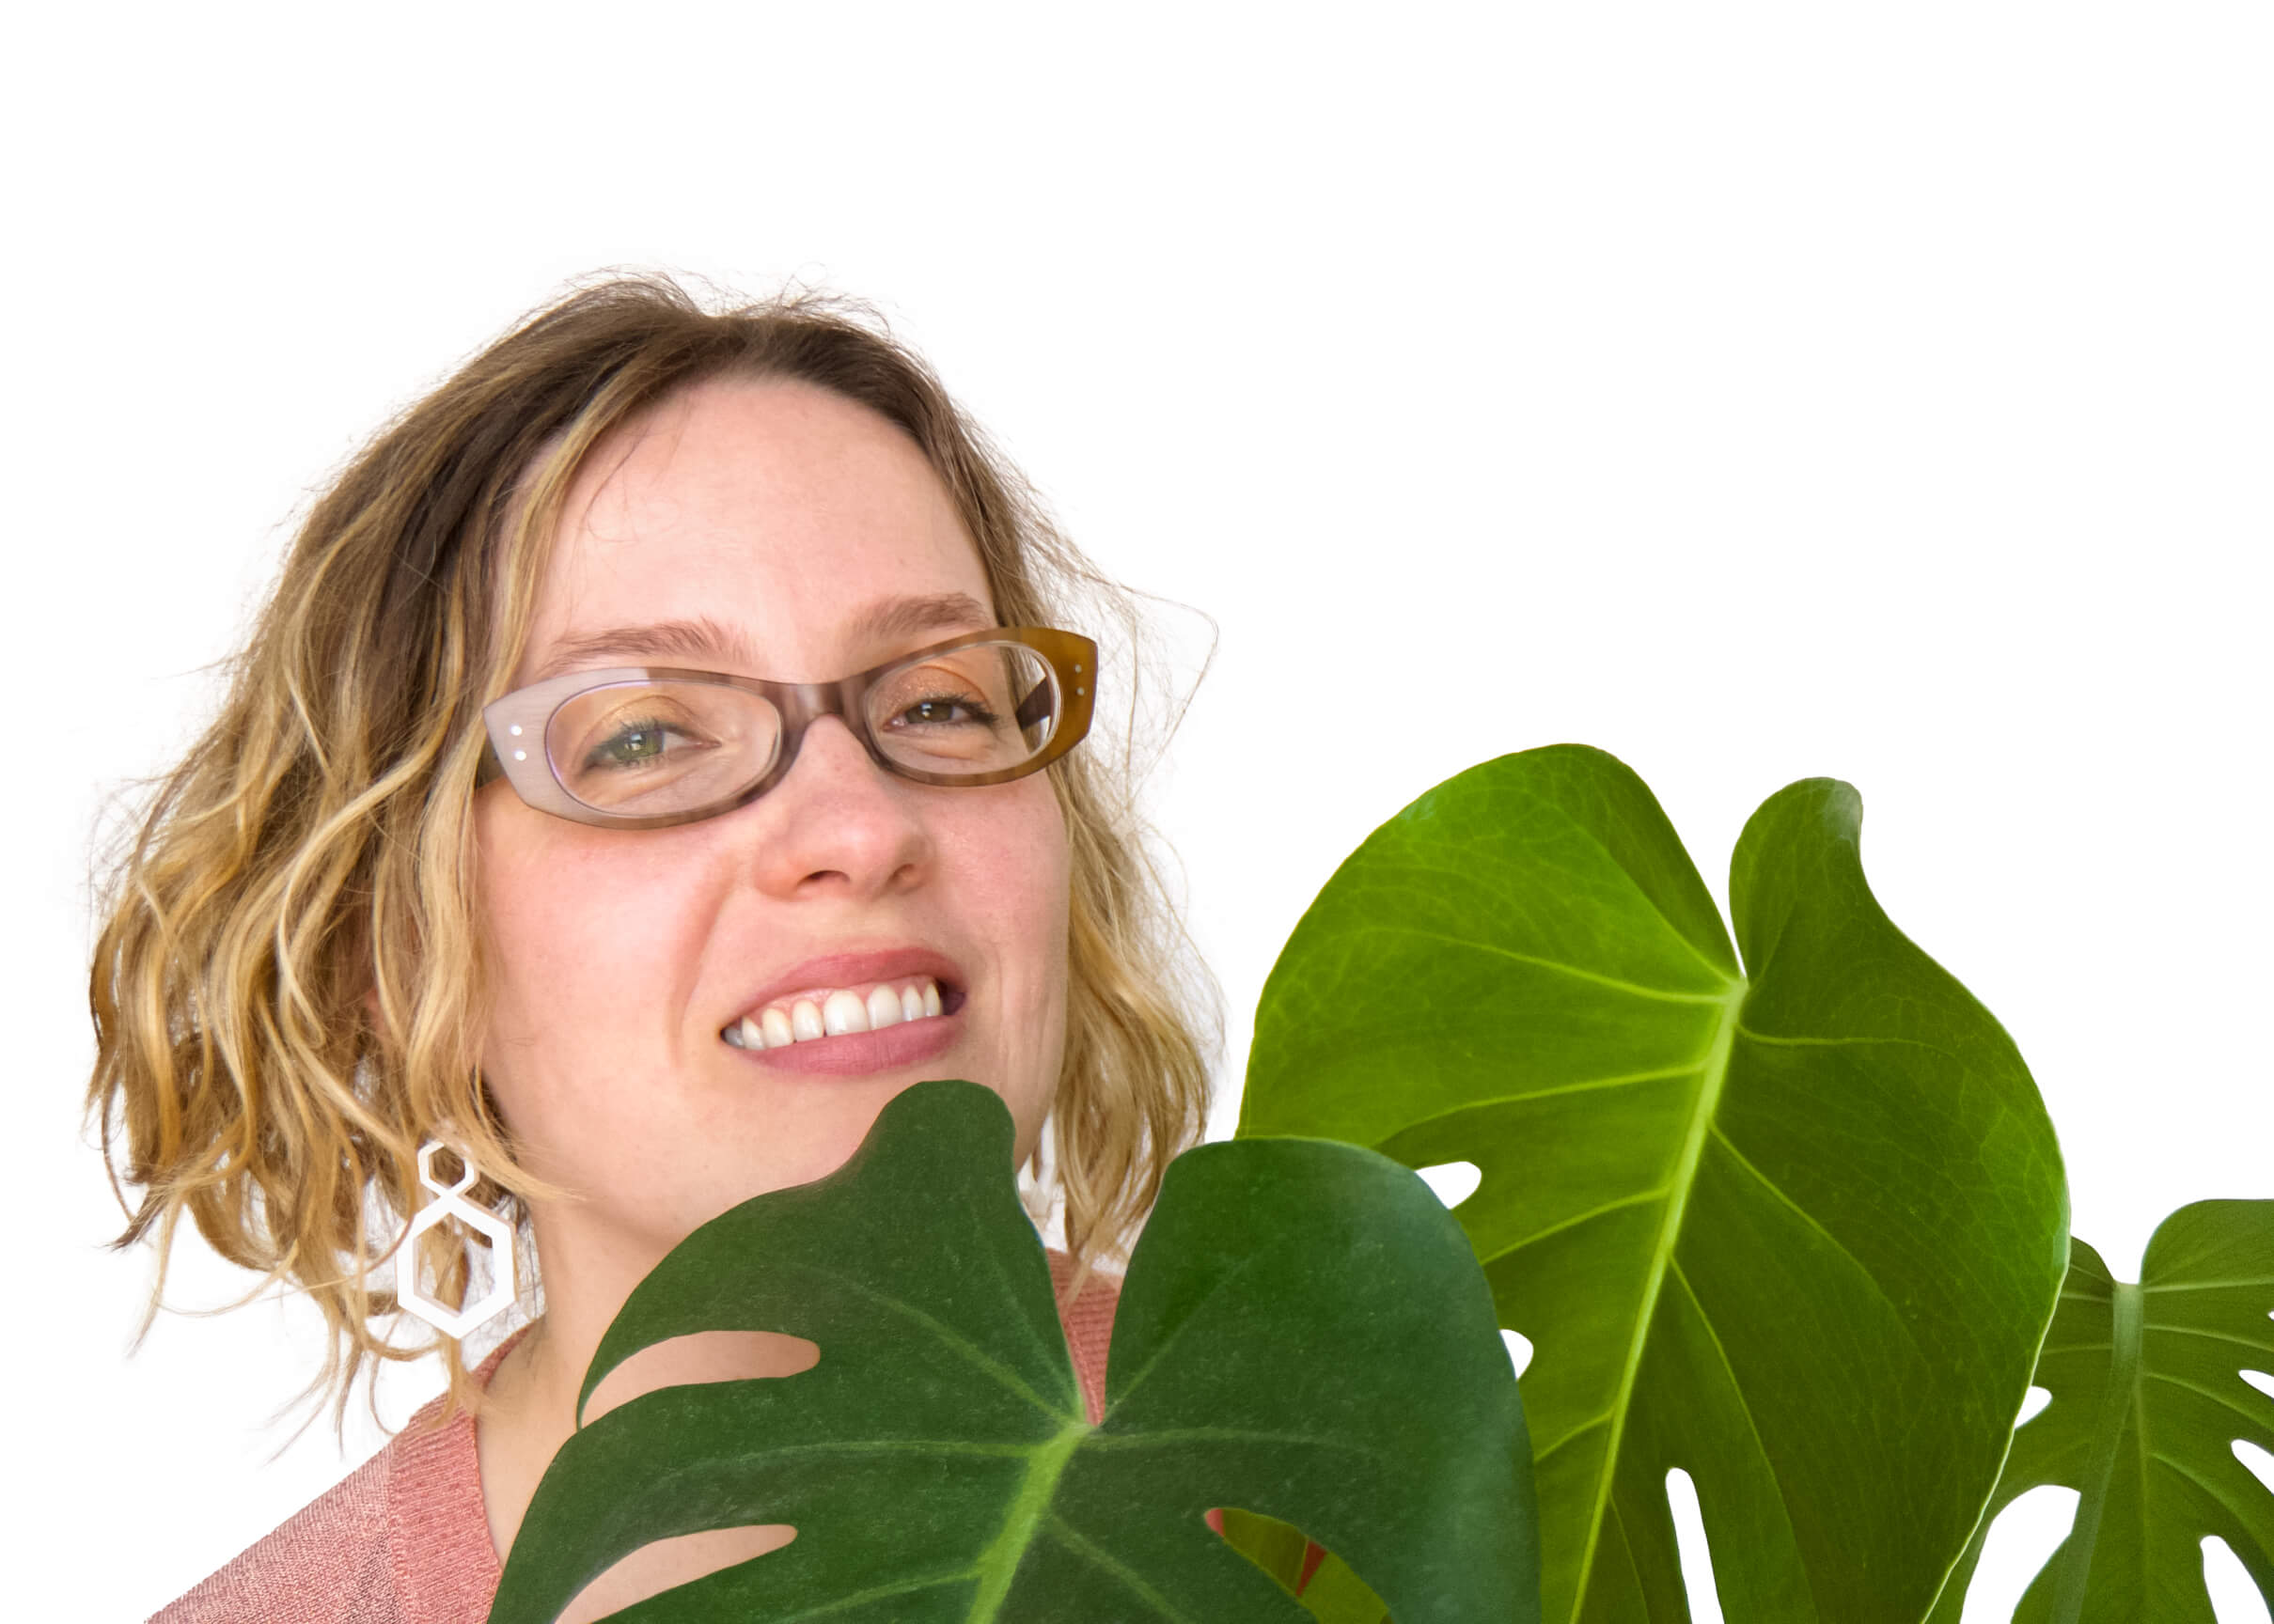 Alexandria Lawrence, Founder of ALSO in PINK. Smiling And Looking Full Of Joy Next To A Lovely Monstera Deliciosa